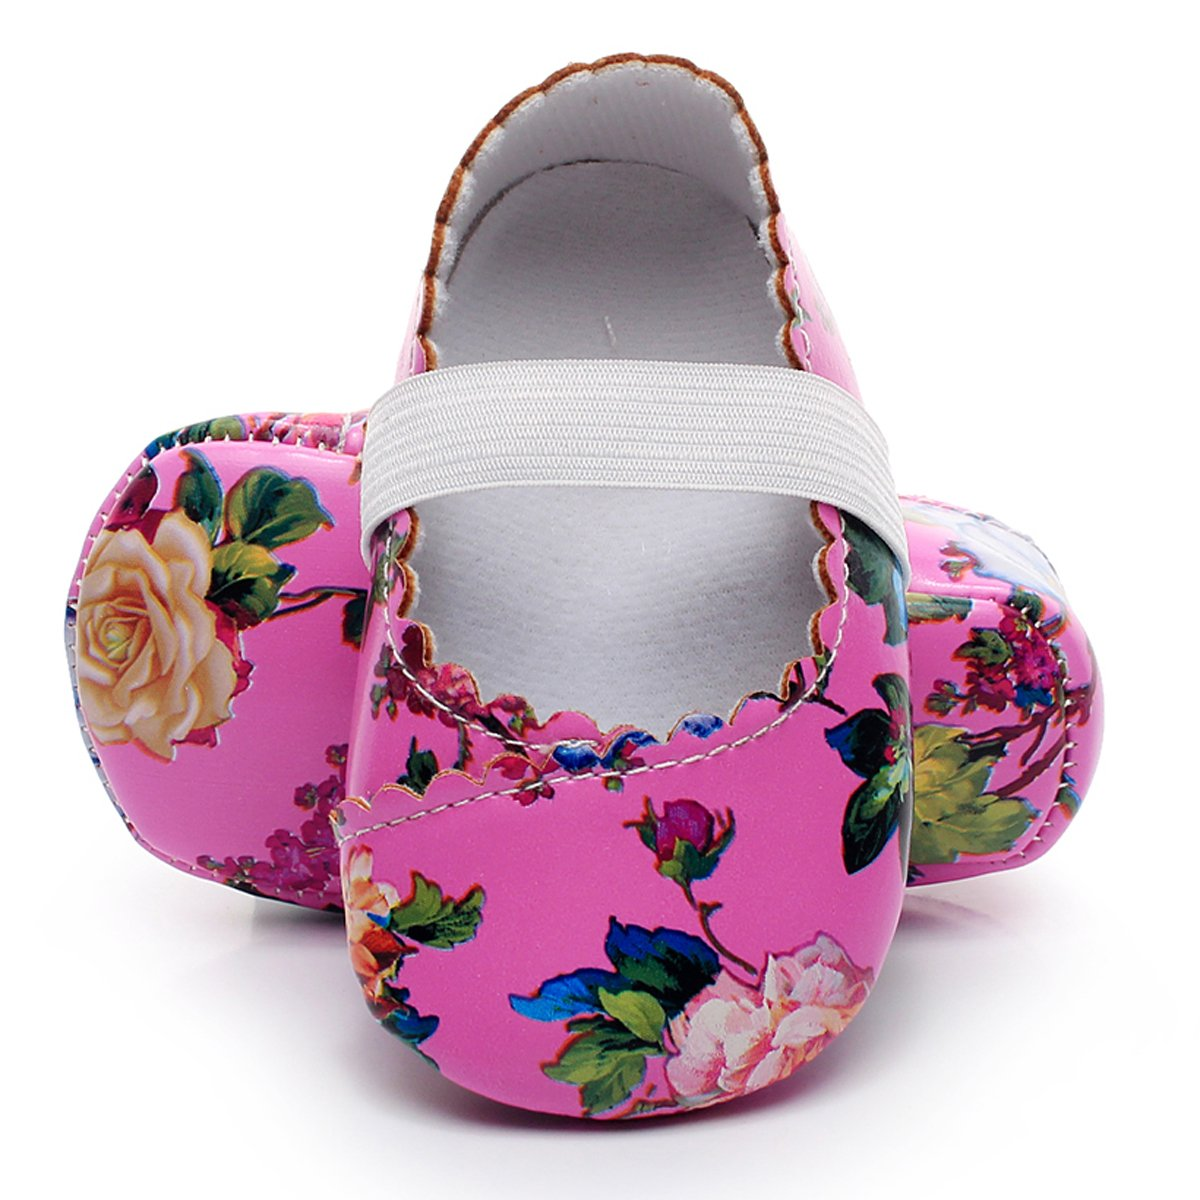 HONGTEYA Print Flower Baby Girls Ballet Princess Dress Shoes Mary Jane Toddler Shoes Flats Baby Sandals